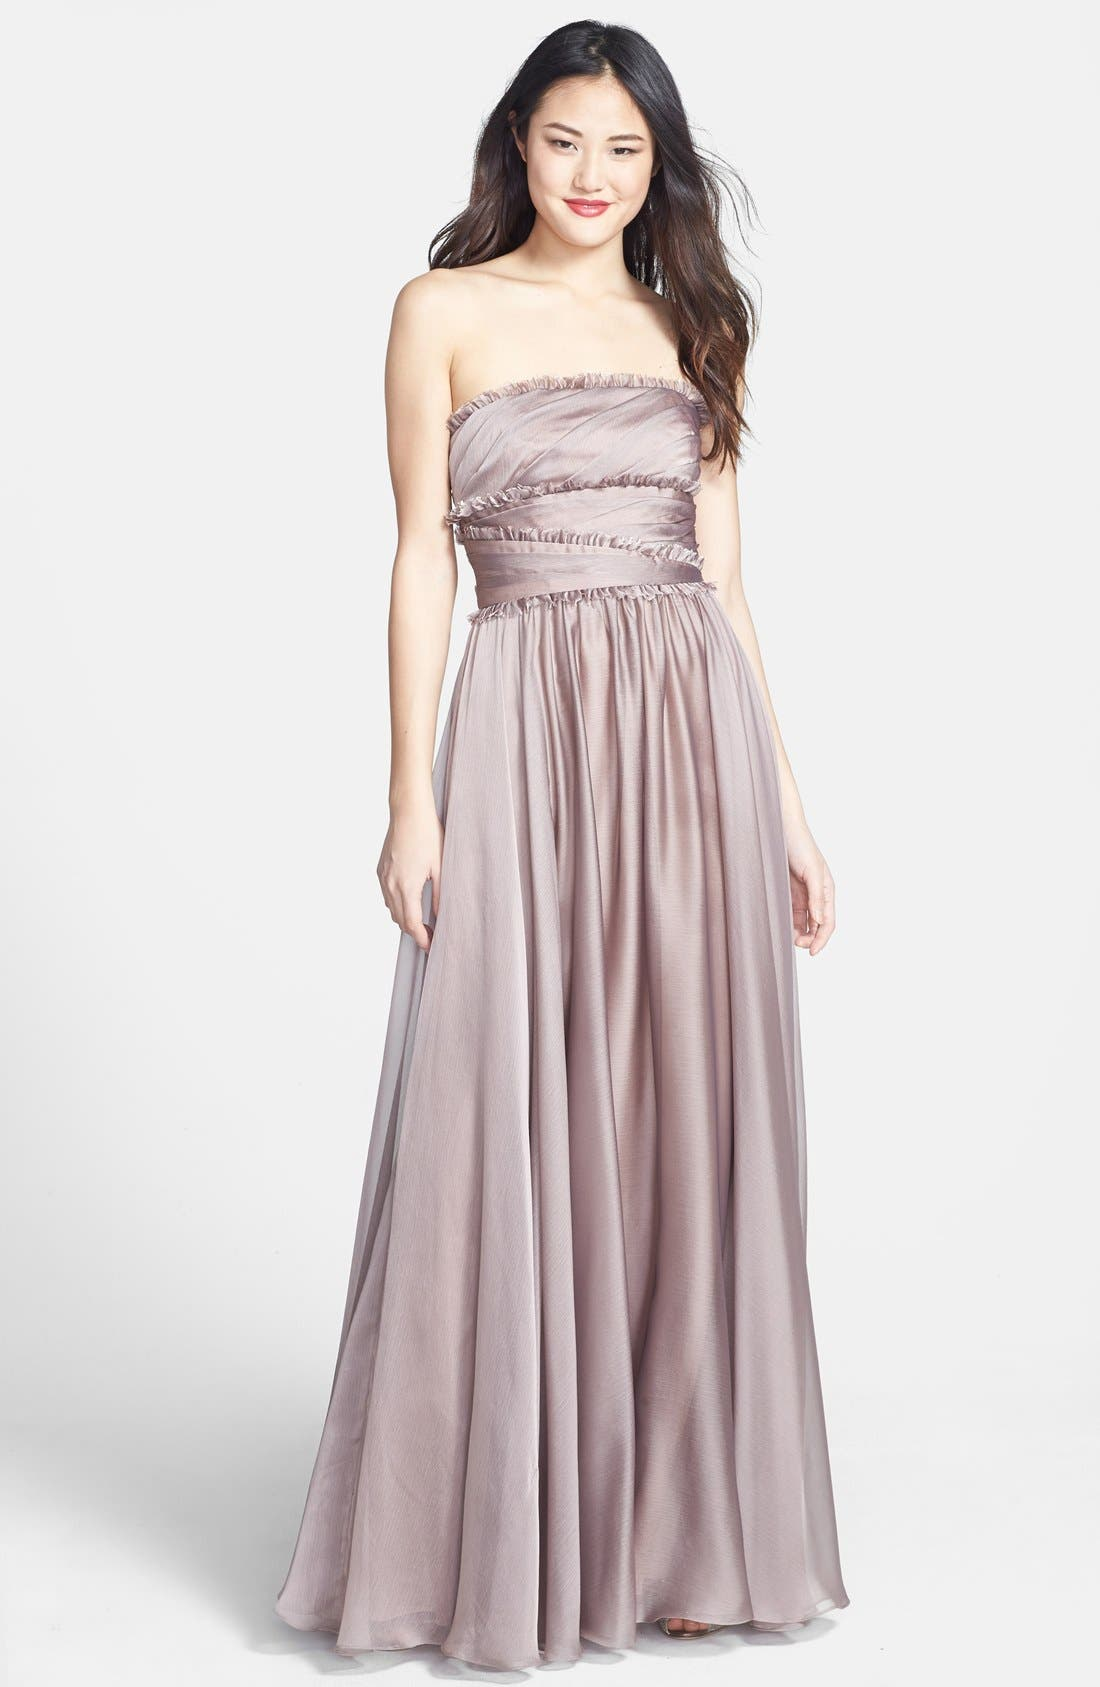 Alternate Image 1 Selected - ML Monique Lhuillier Bridesmaids Strapless Chiffon Gown (Nordstrom Exclusive)